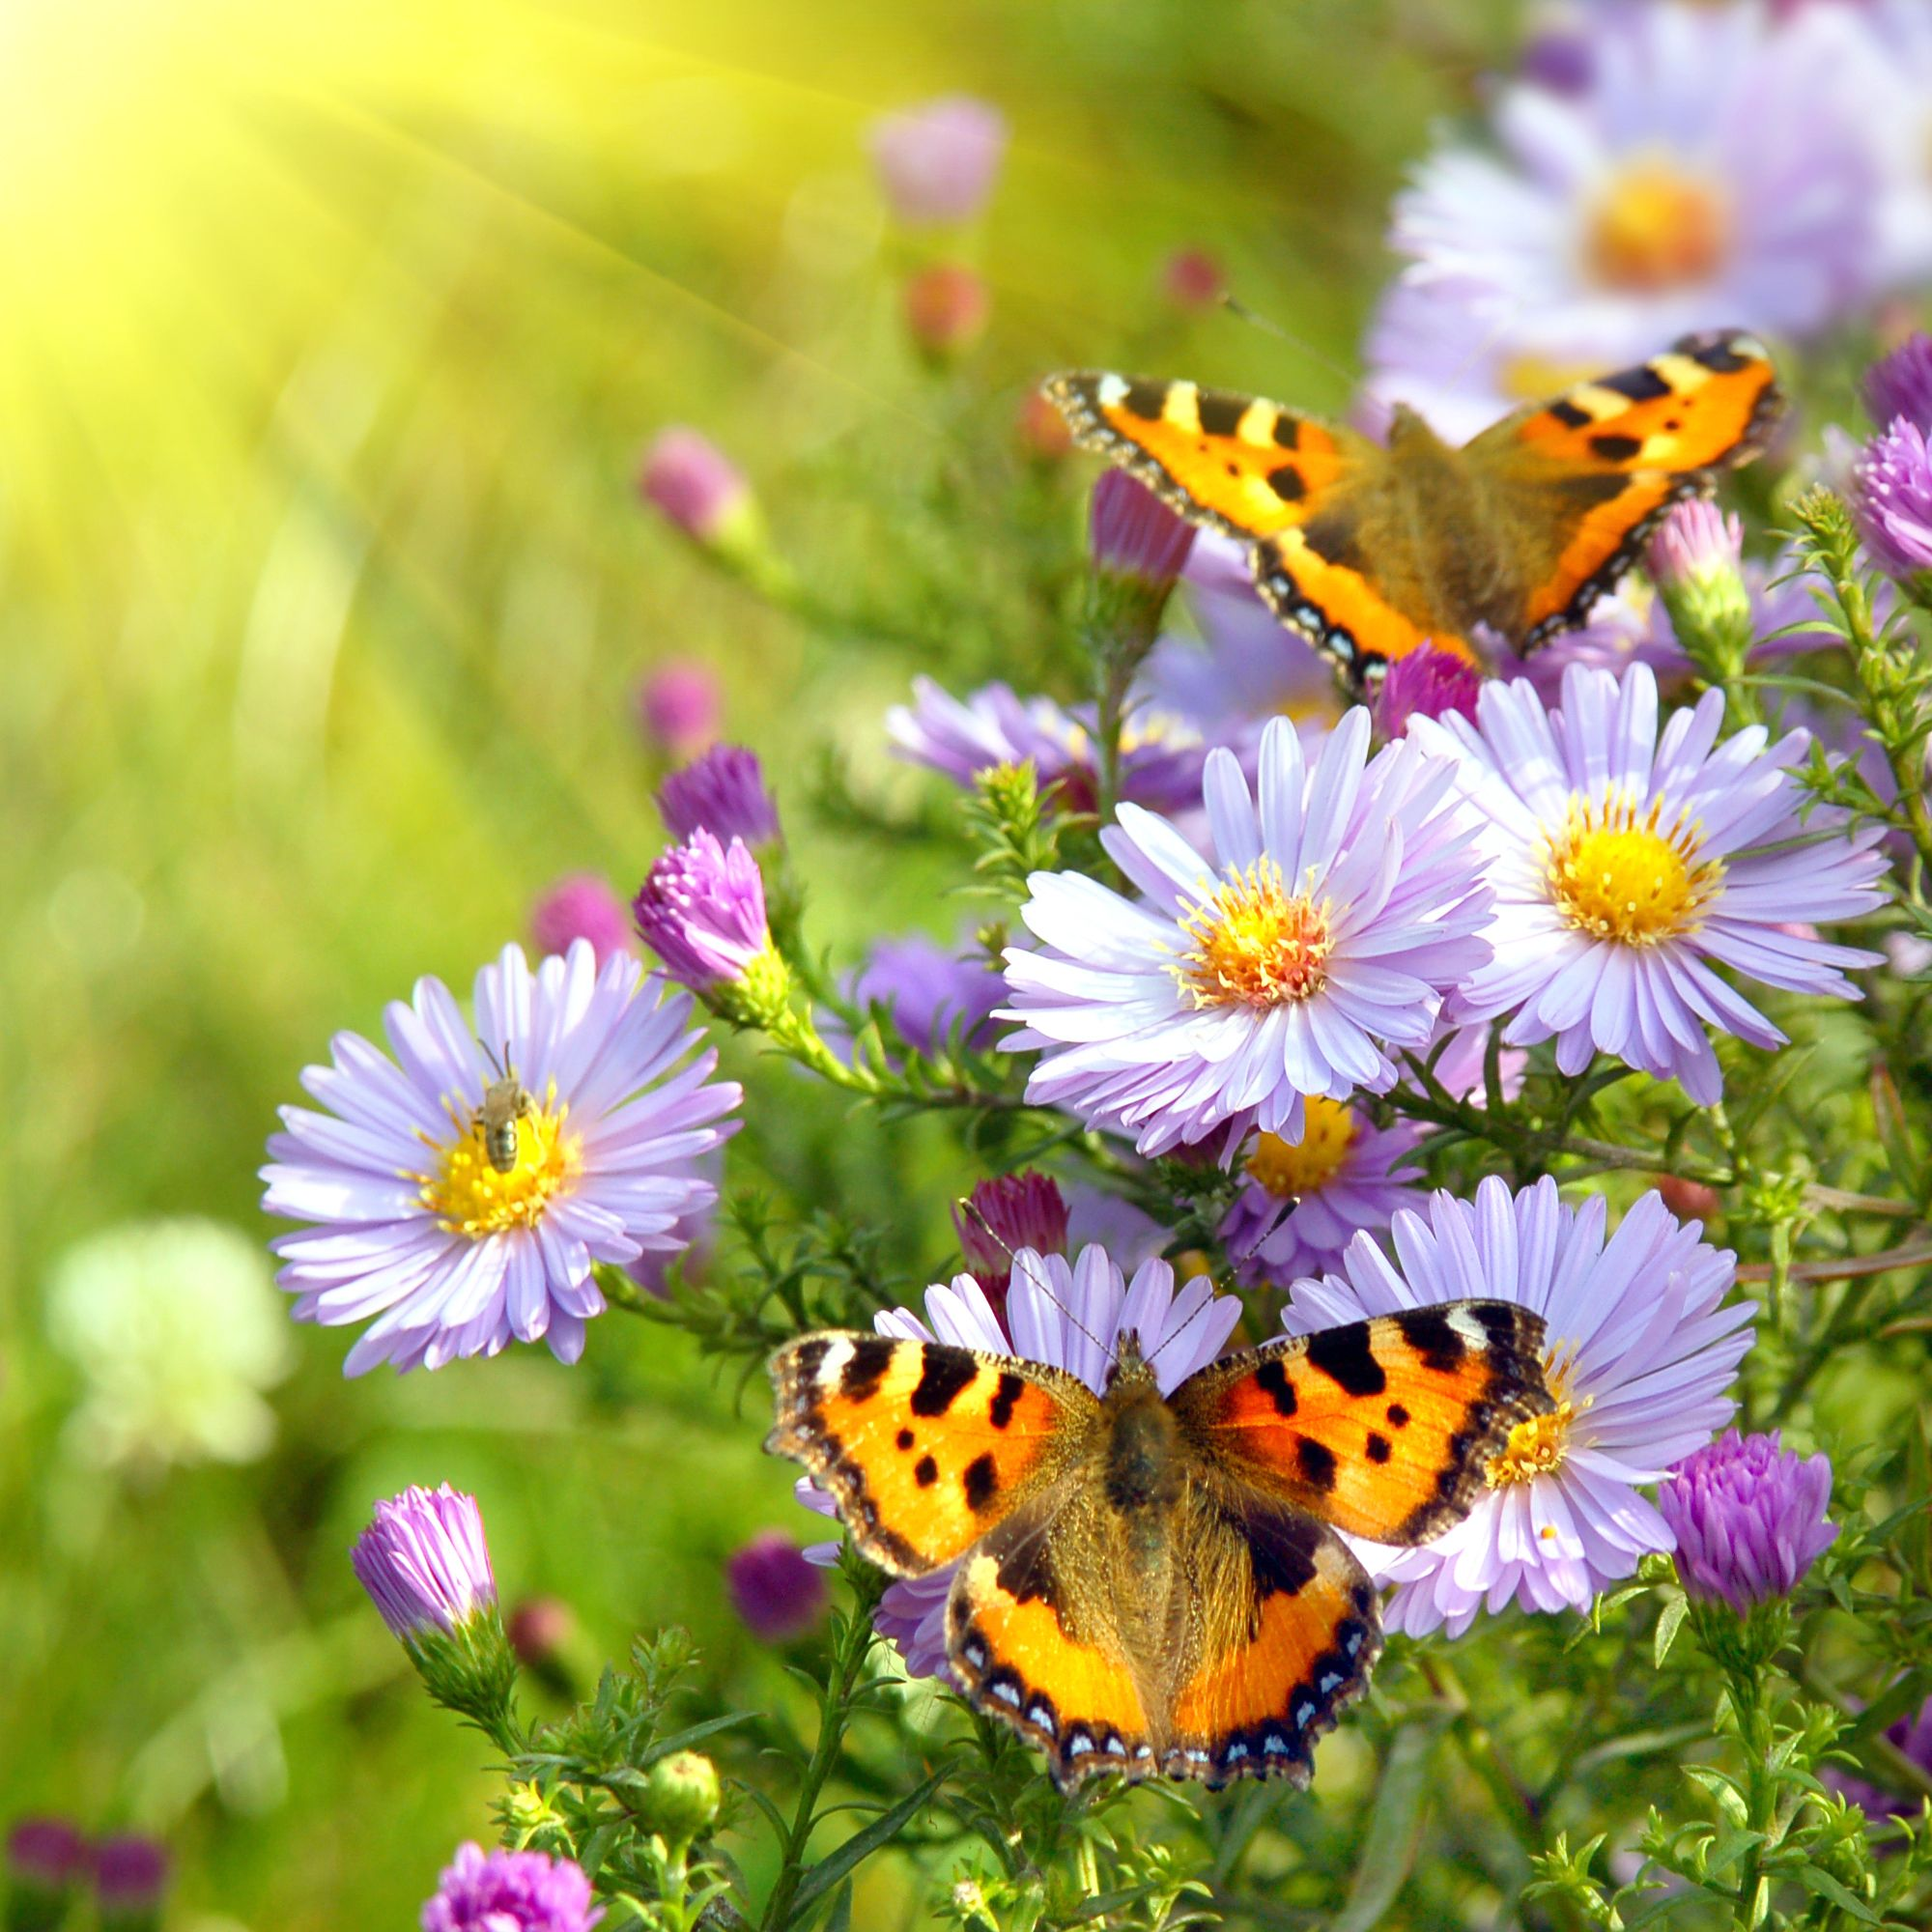 Image For Spring Flowers And Butterflies Cool Wallpapers Mla